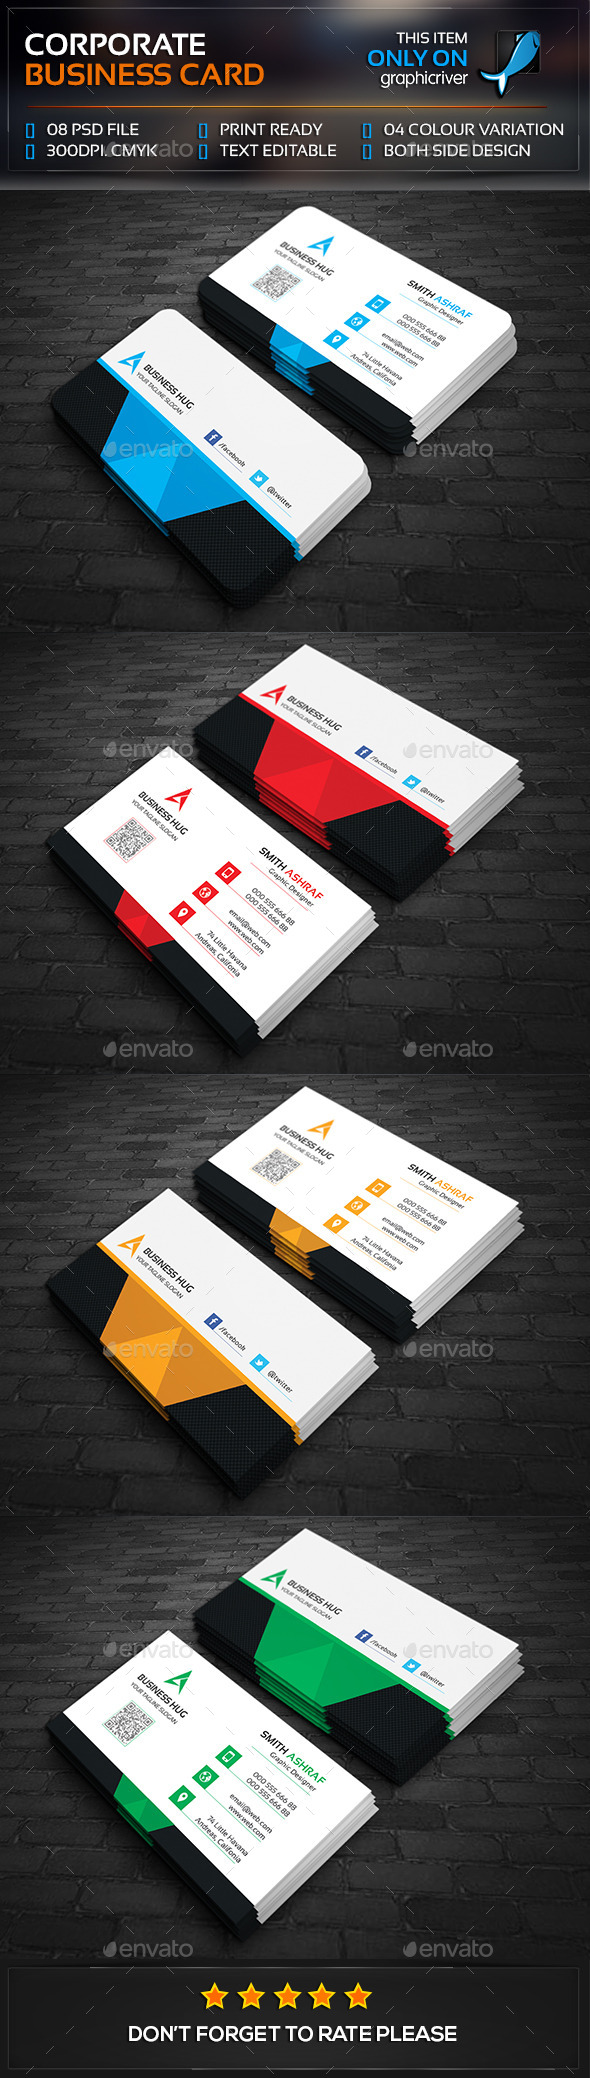 Mega abstract business card template psd design download http mega abstract business card template psd design download httpgraphicriver reheart Image collections